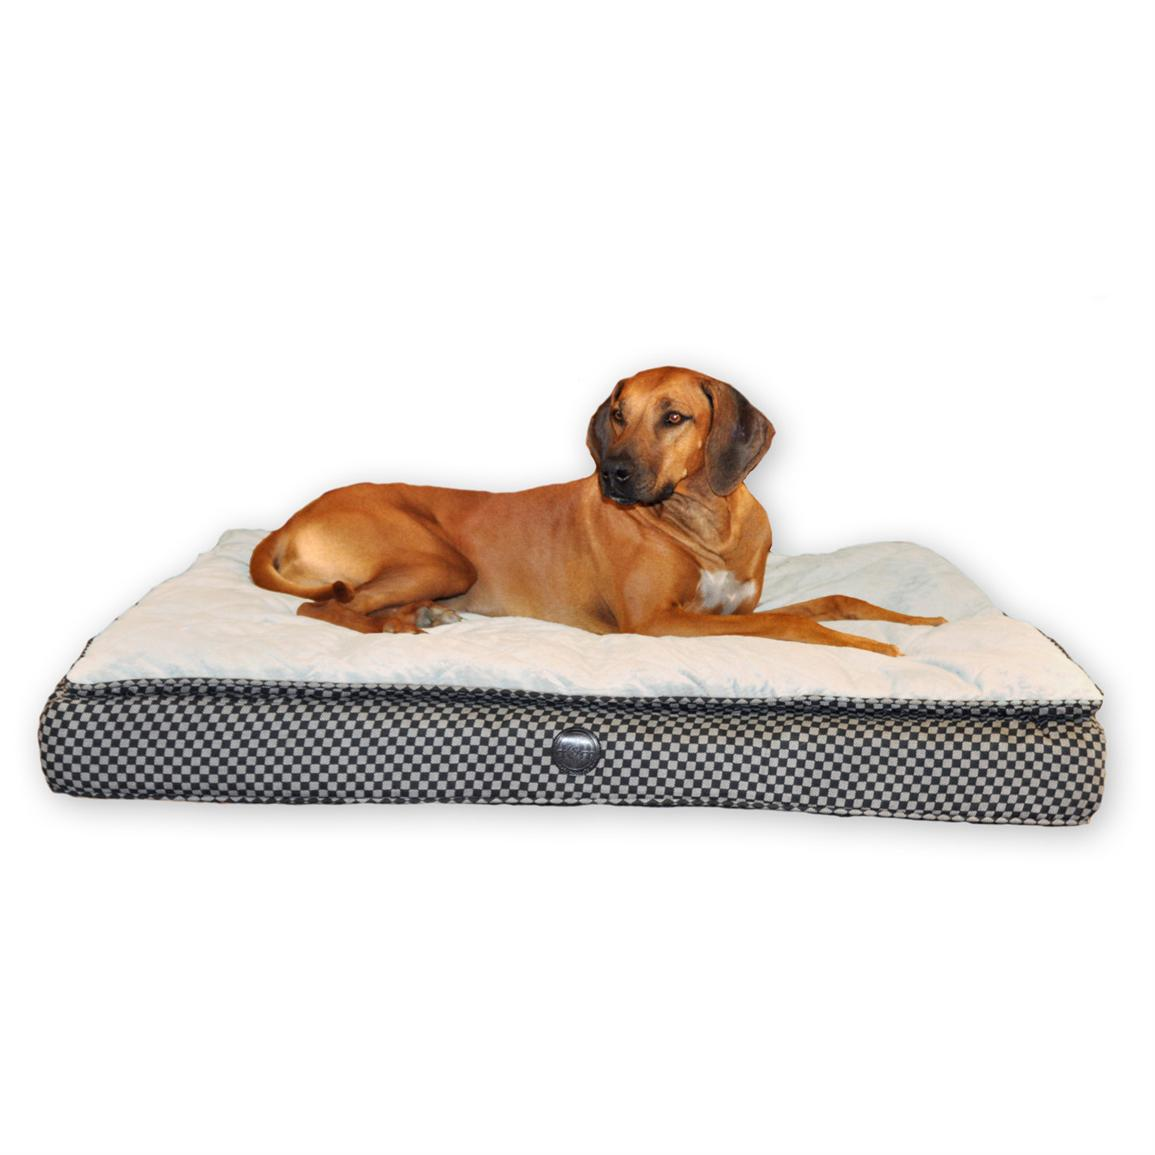 K&H Pet Products Feather Top Ortho Bed™, Tan / Brown